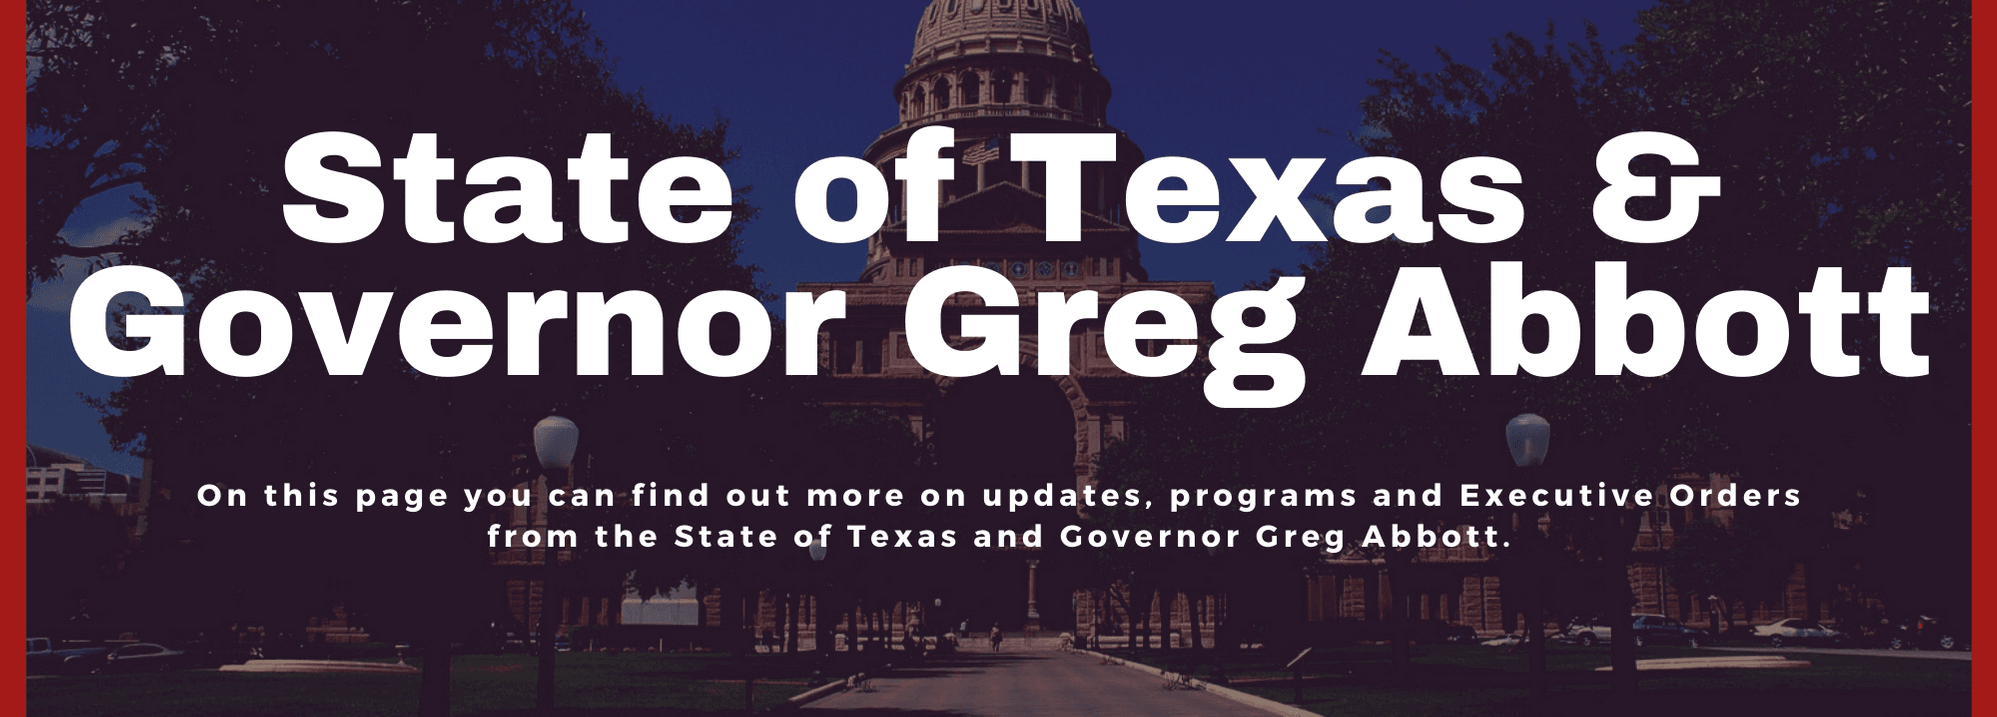 State of Texas and Greg Abbott - website banners